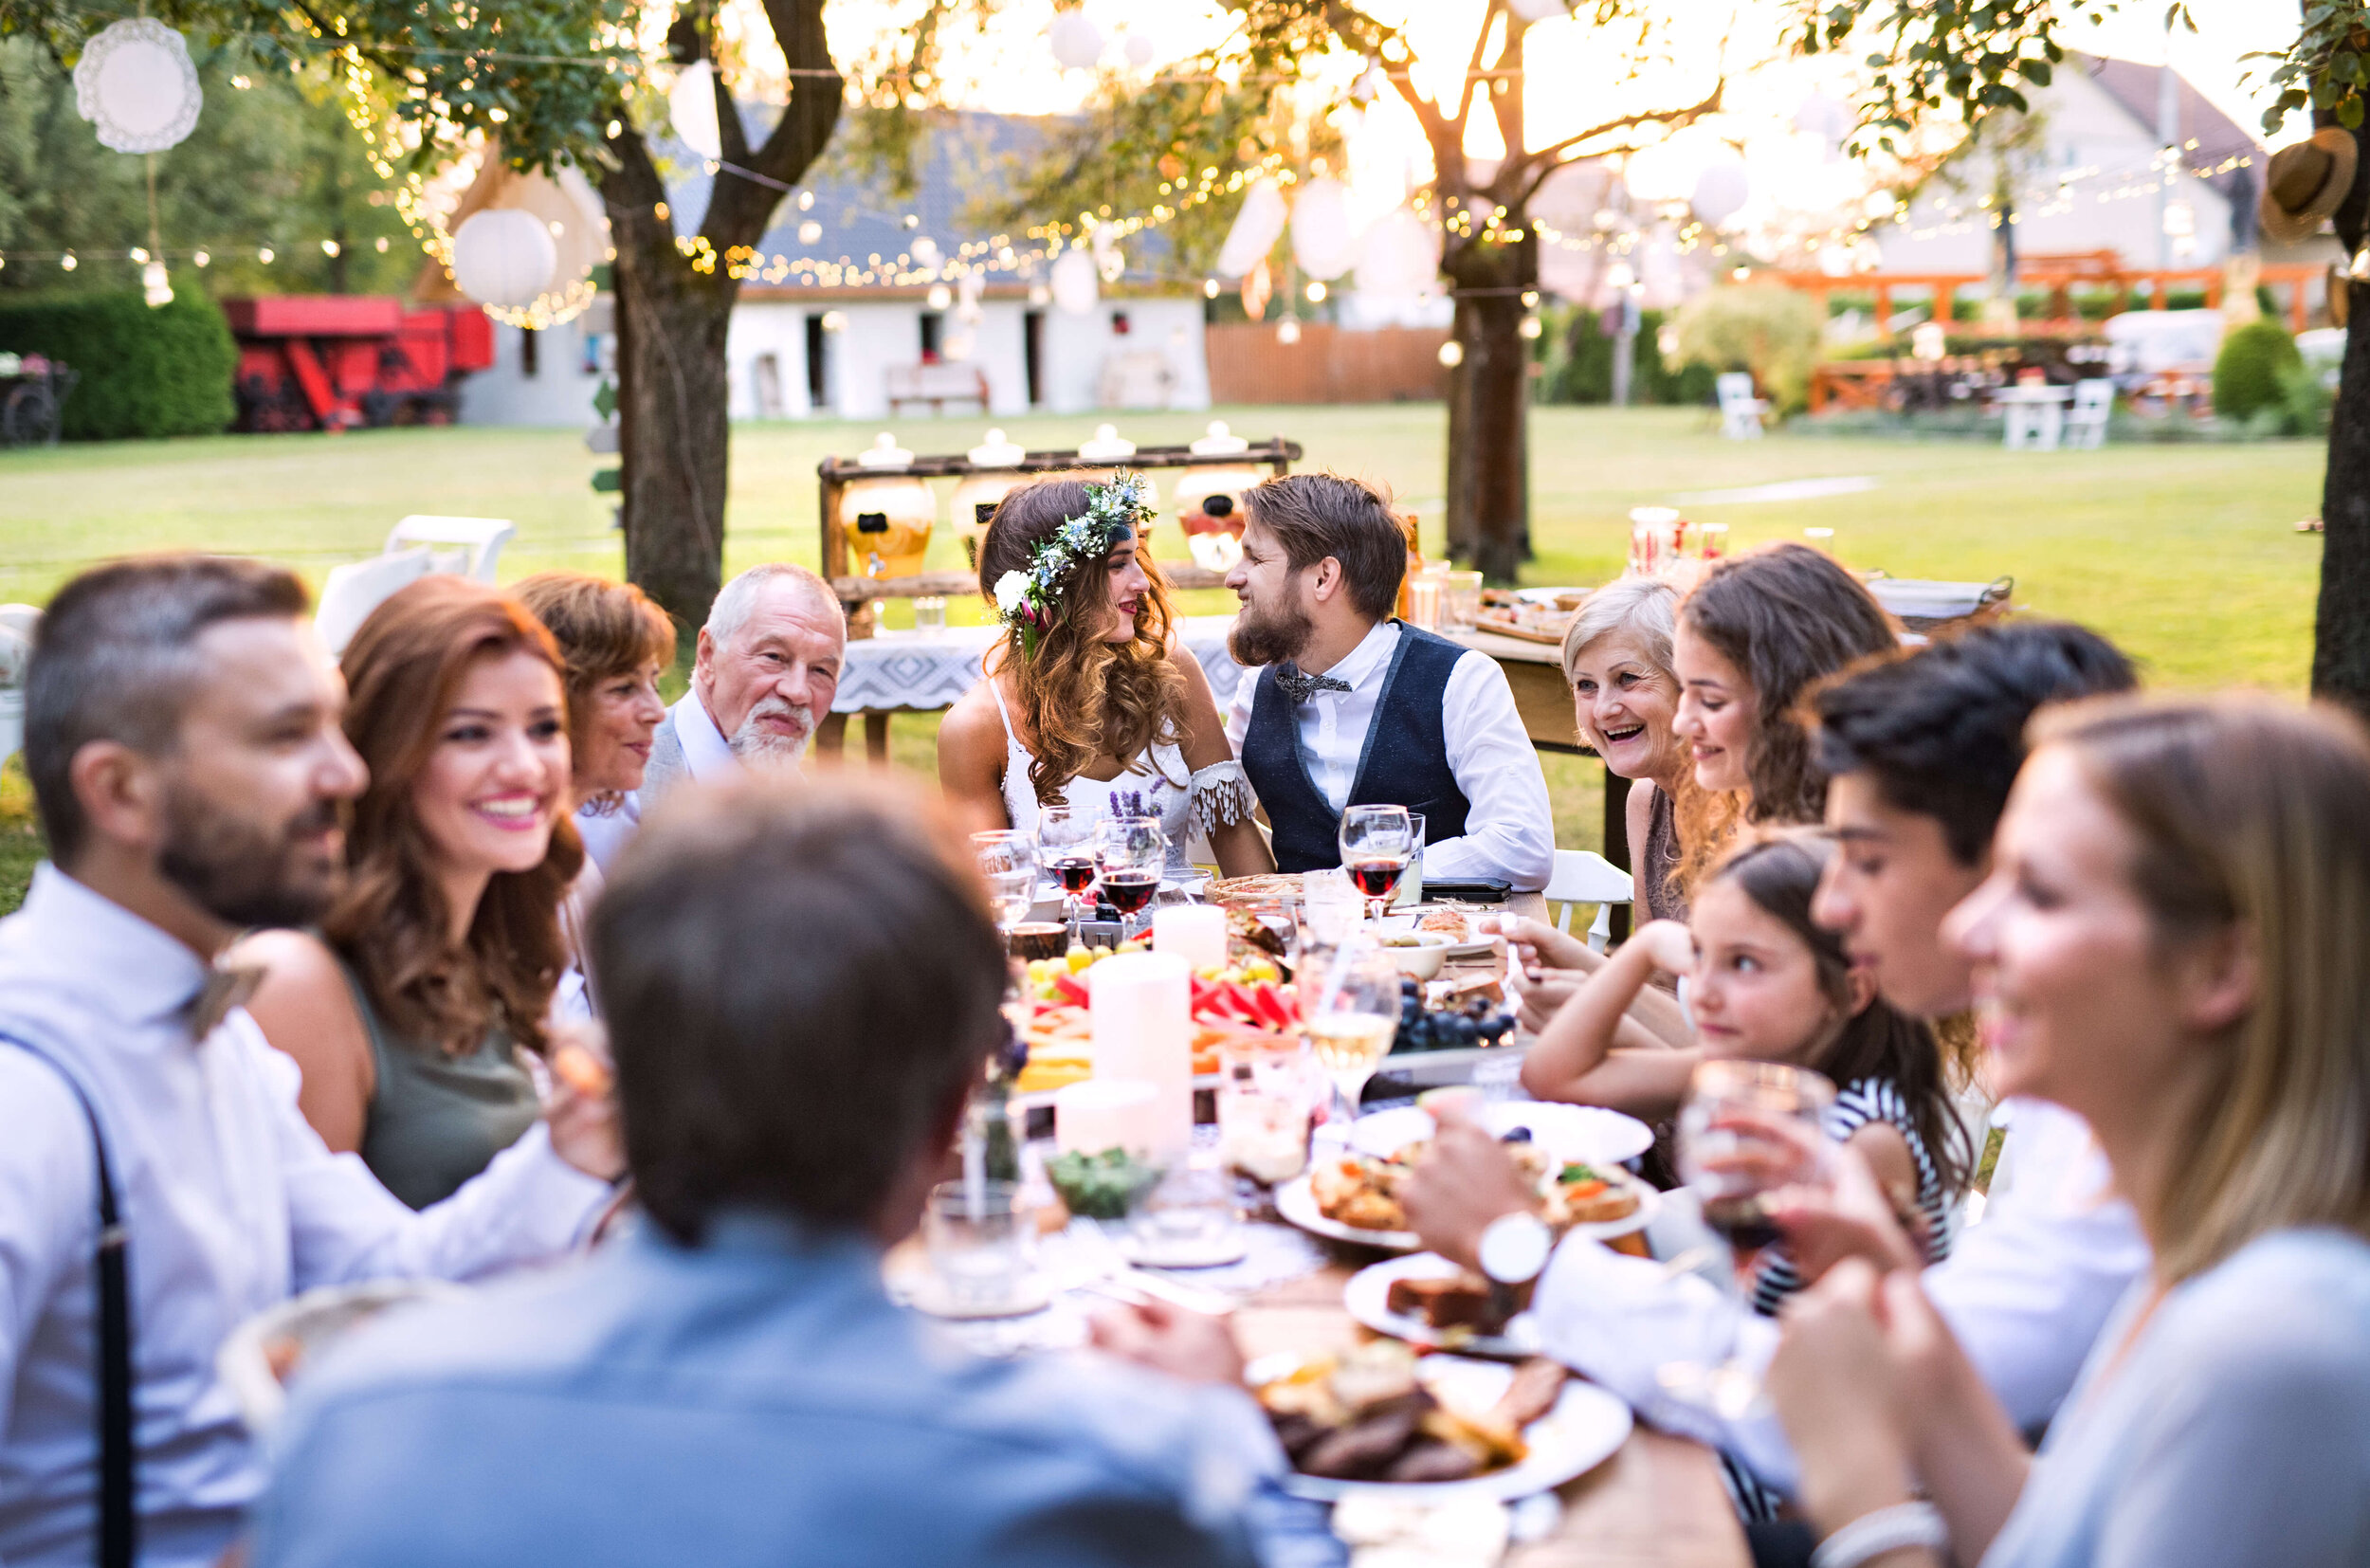 Table of people eating dinner at backyard wedding.jpg